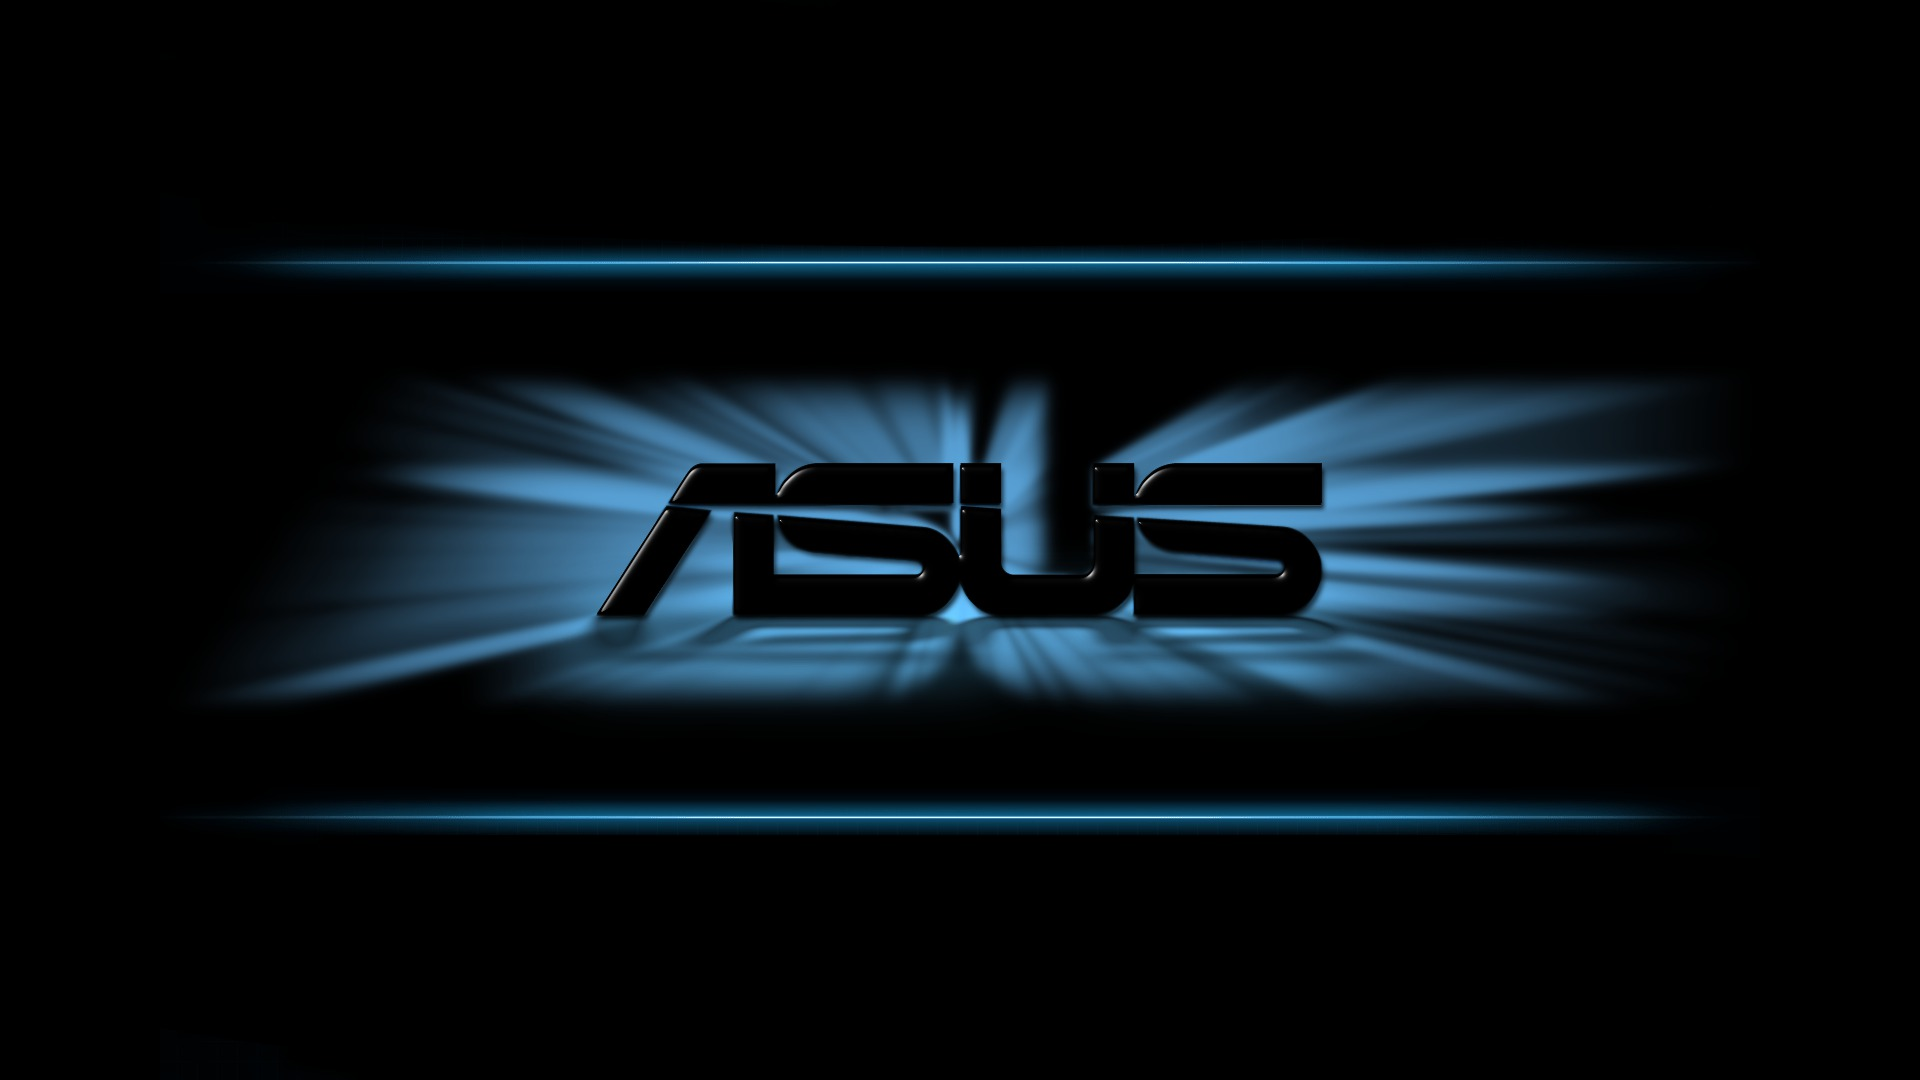 Asus Logo HD Wallpaper Background 7657 Wallpaper ForWallpaperscom 1920x1080